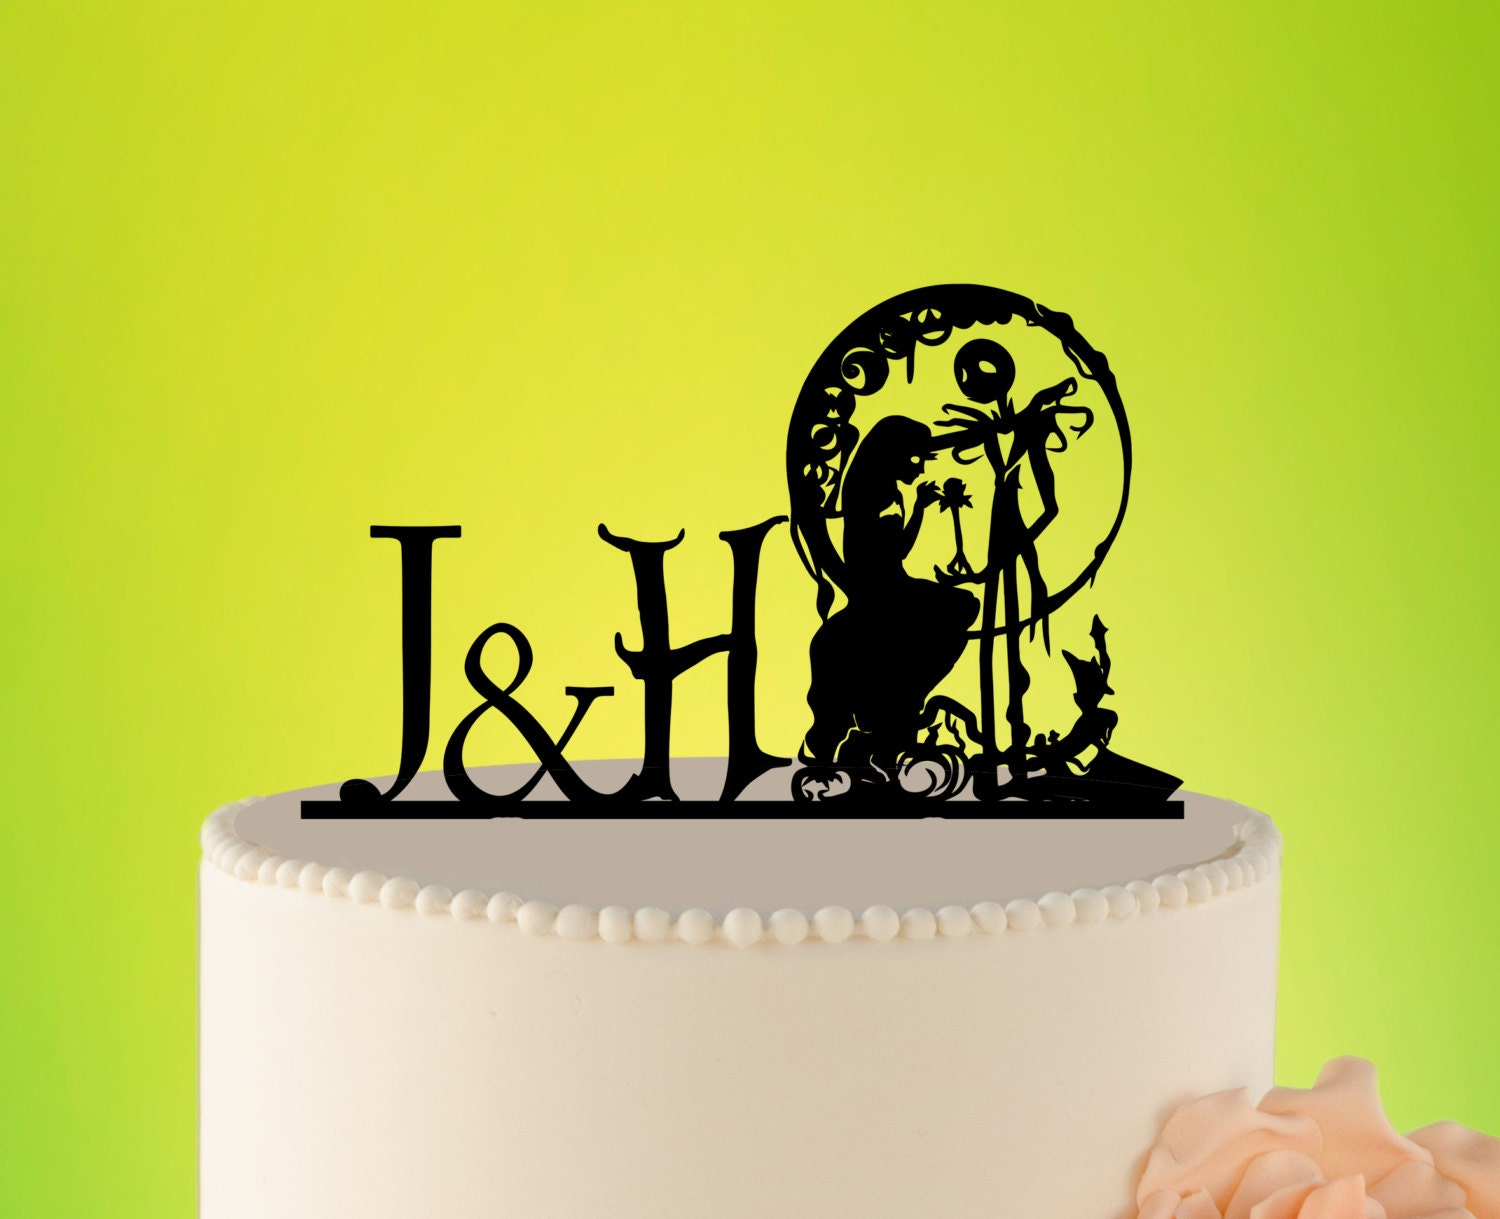 Delighted Fall Wedding Cakes Thick Wedding Cake Serving Set Flat Wedding Cake Recipe Wedding Cake Pictures Old Disney Wedding Cake Toppers BlueAverage Wedding Cake Cost Wedding Cake Topper Jack And Sally Cake Topper Jack Sally